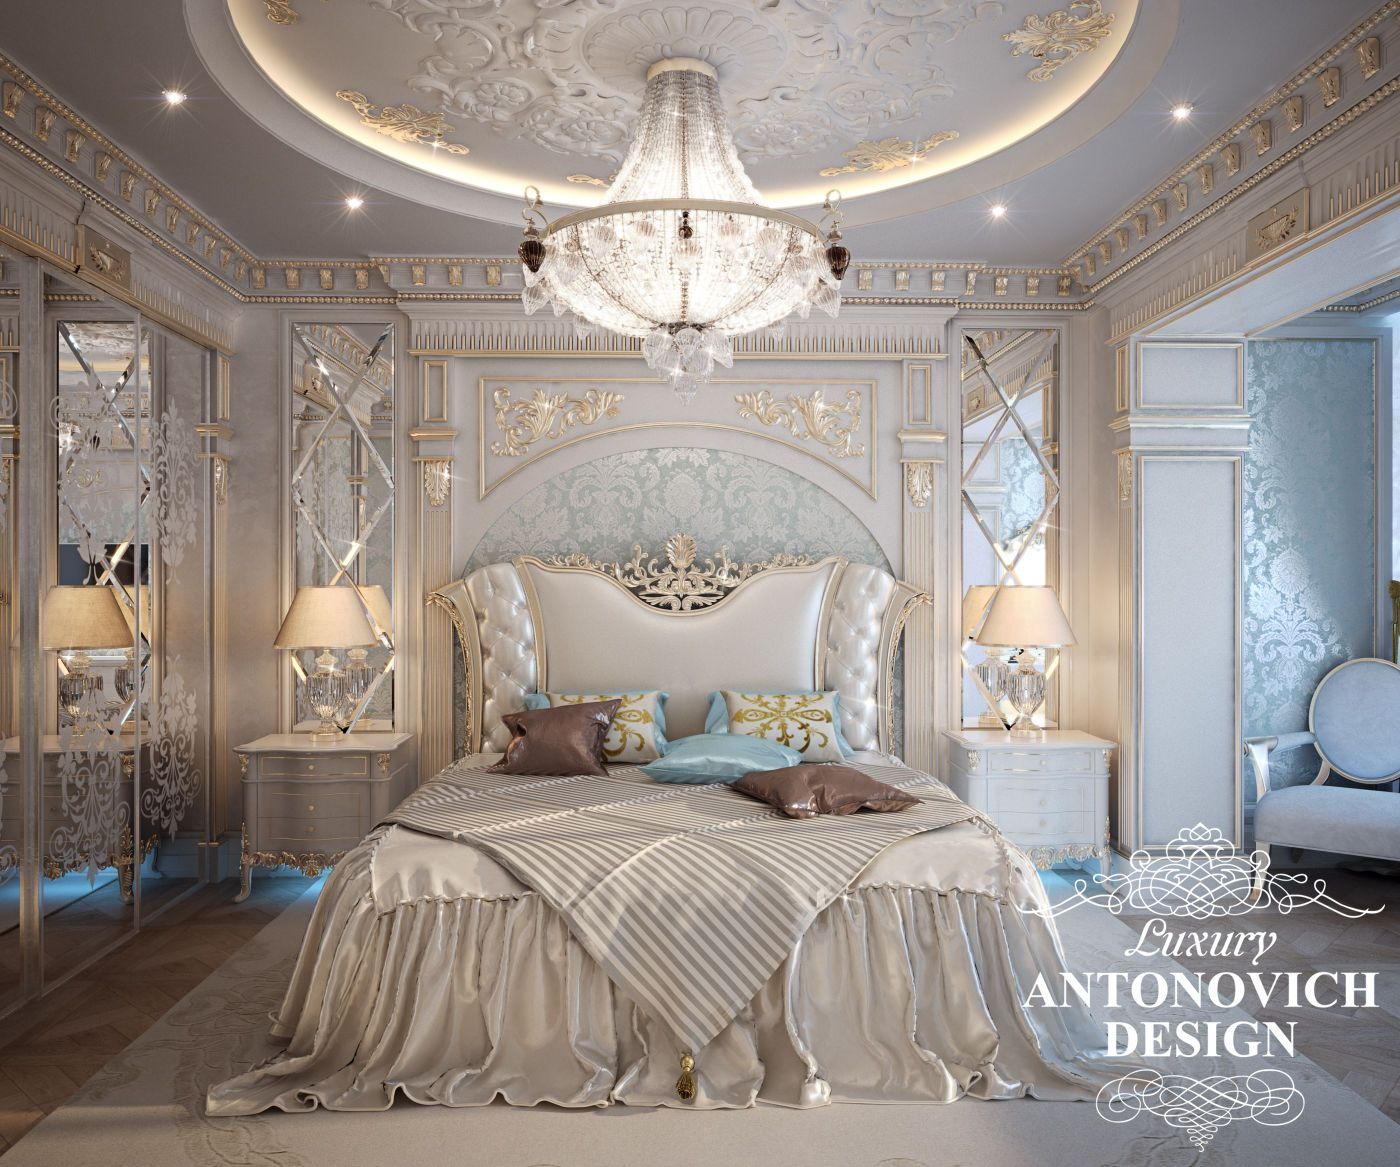 Royal Home Designs: Pin By Surendra Samdaria On Dream House